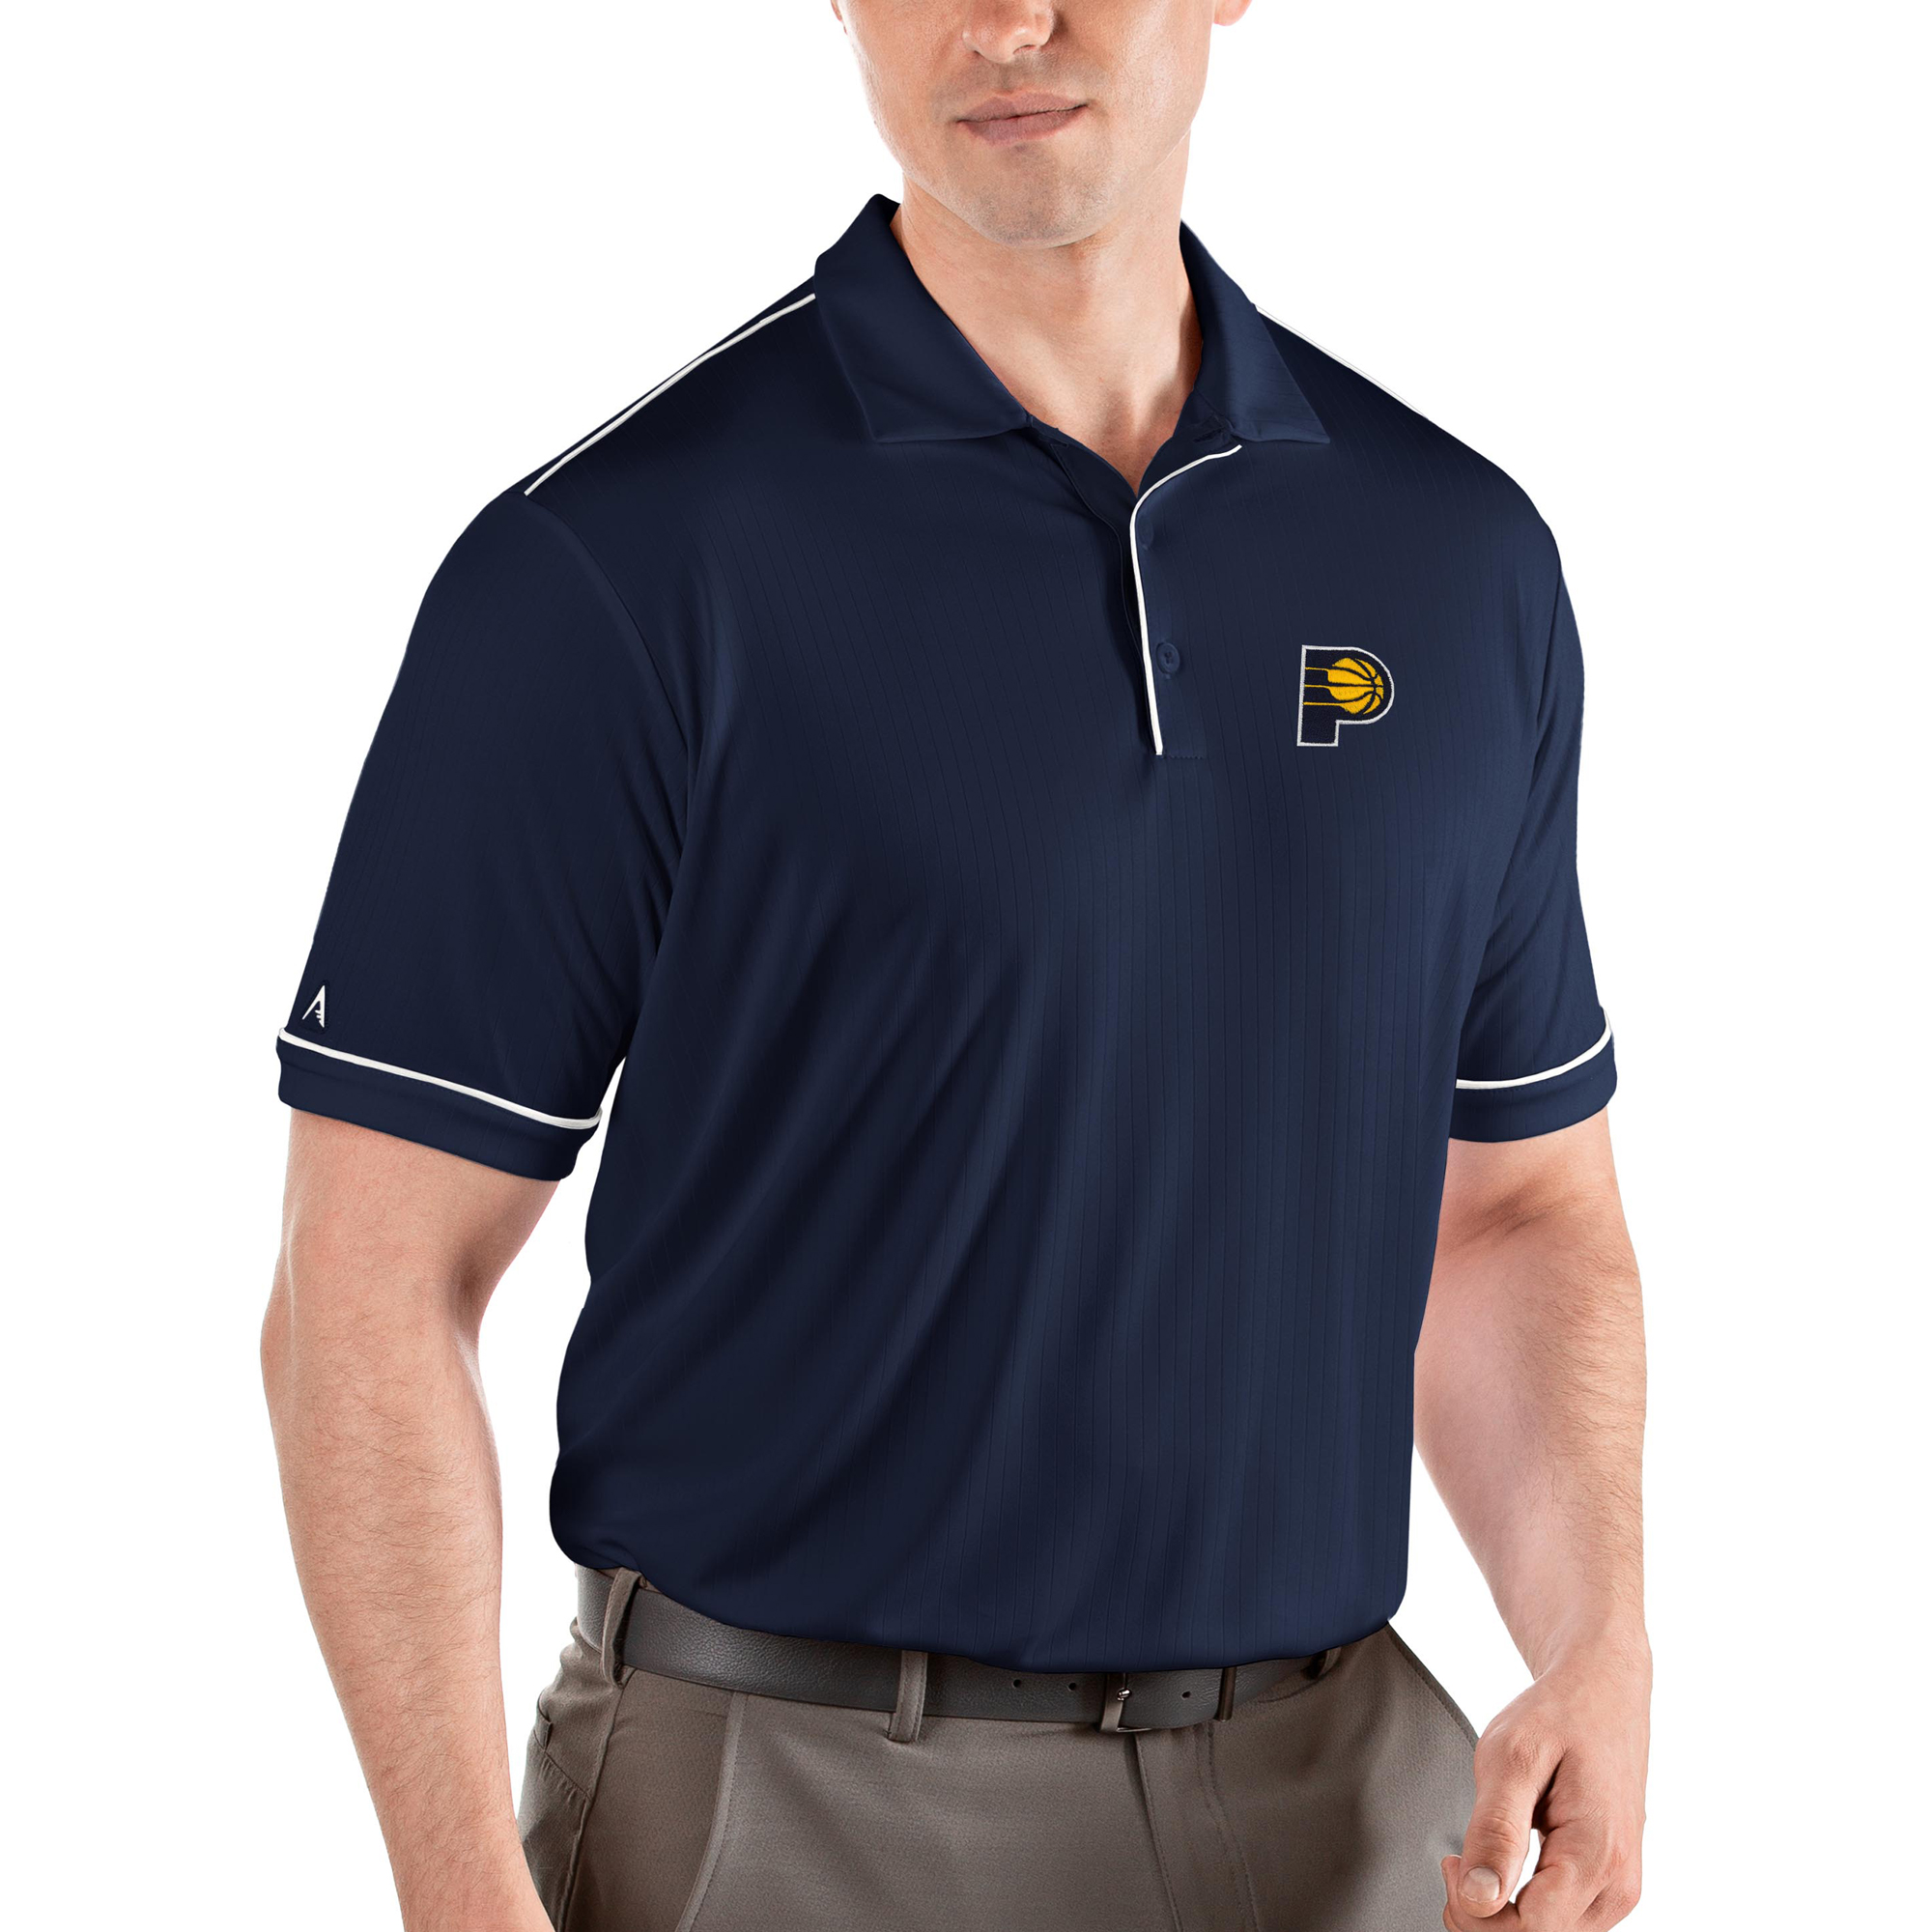 Indiana Pacers Antigua Salute Polo - Navy/White